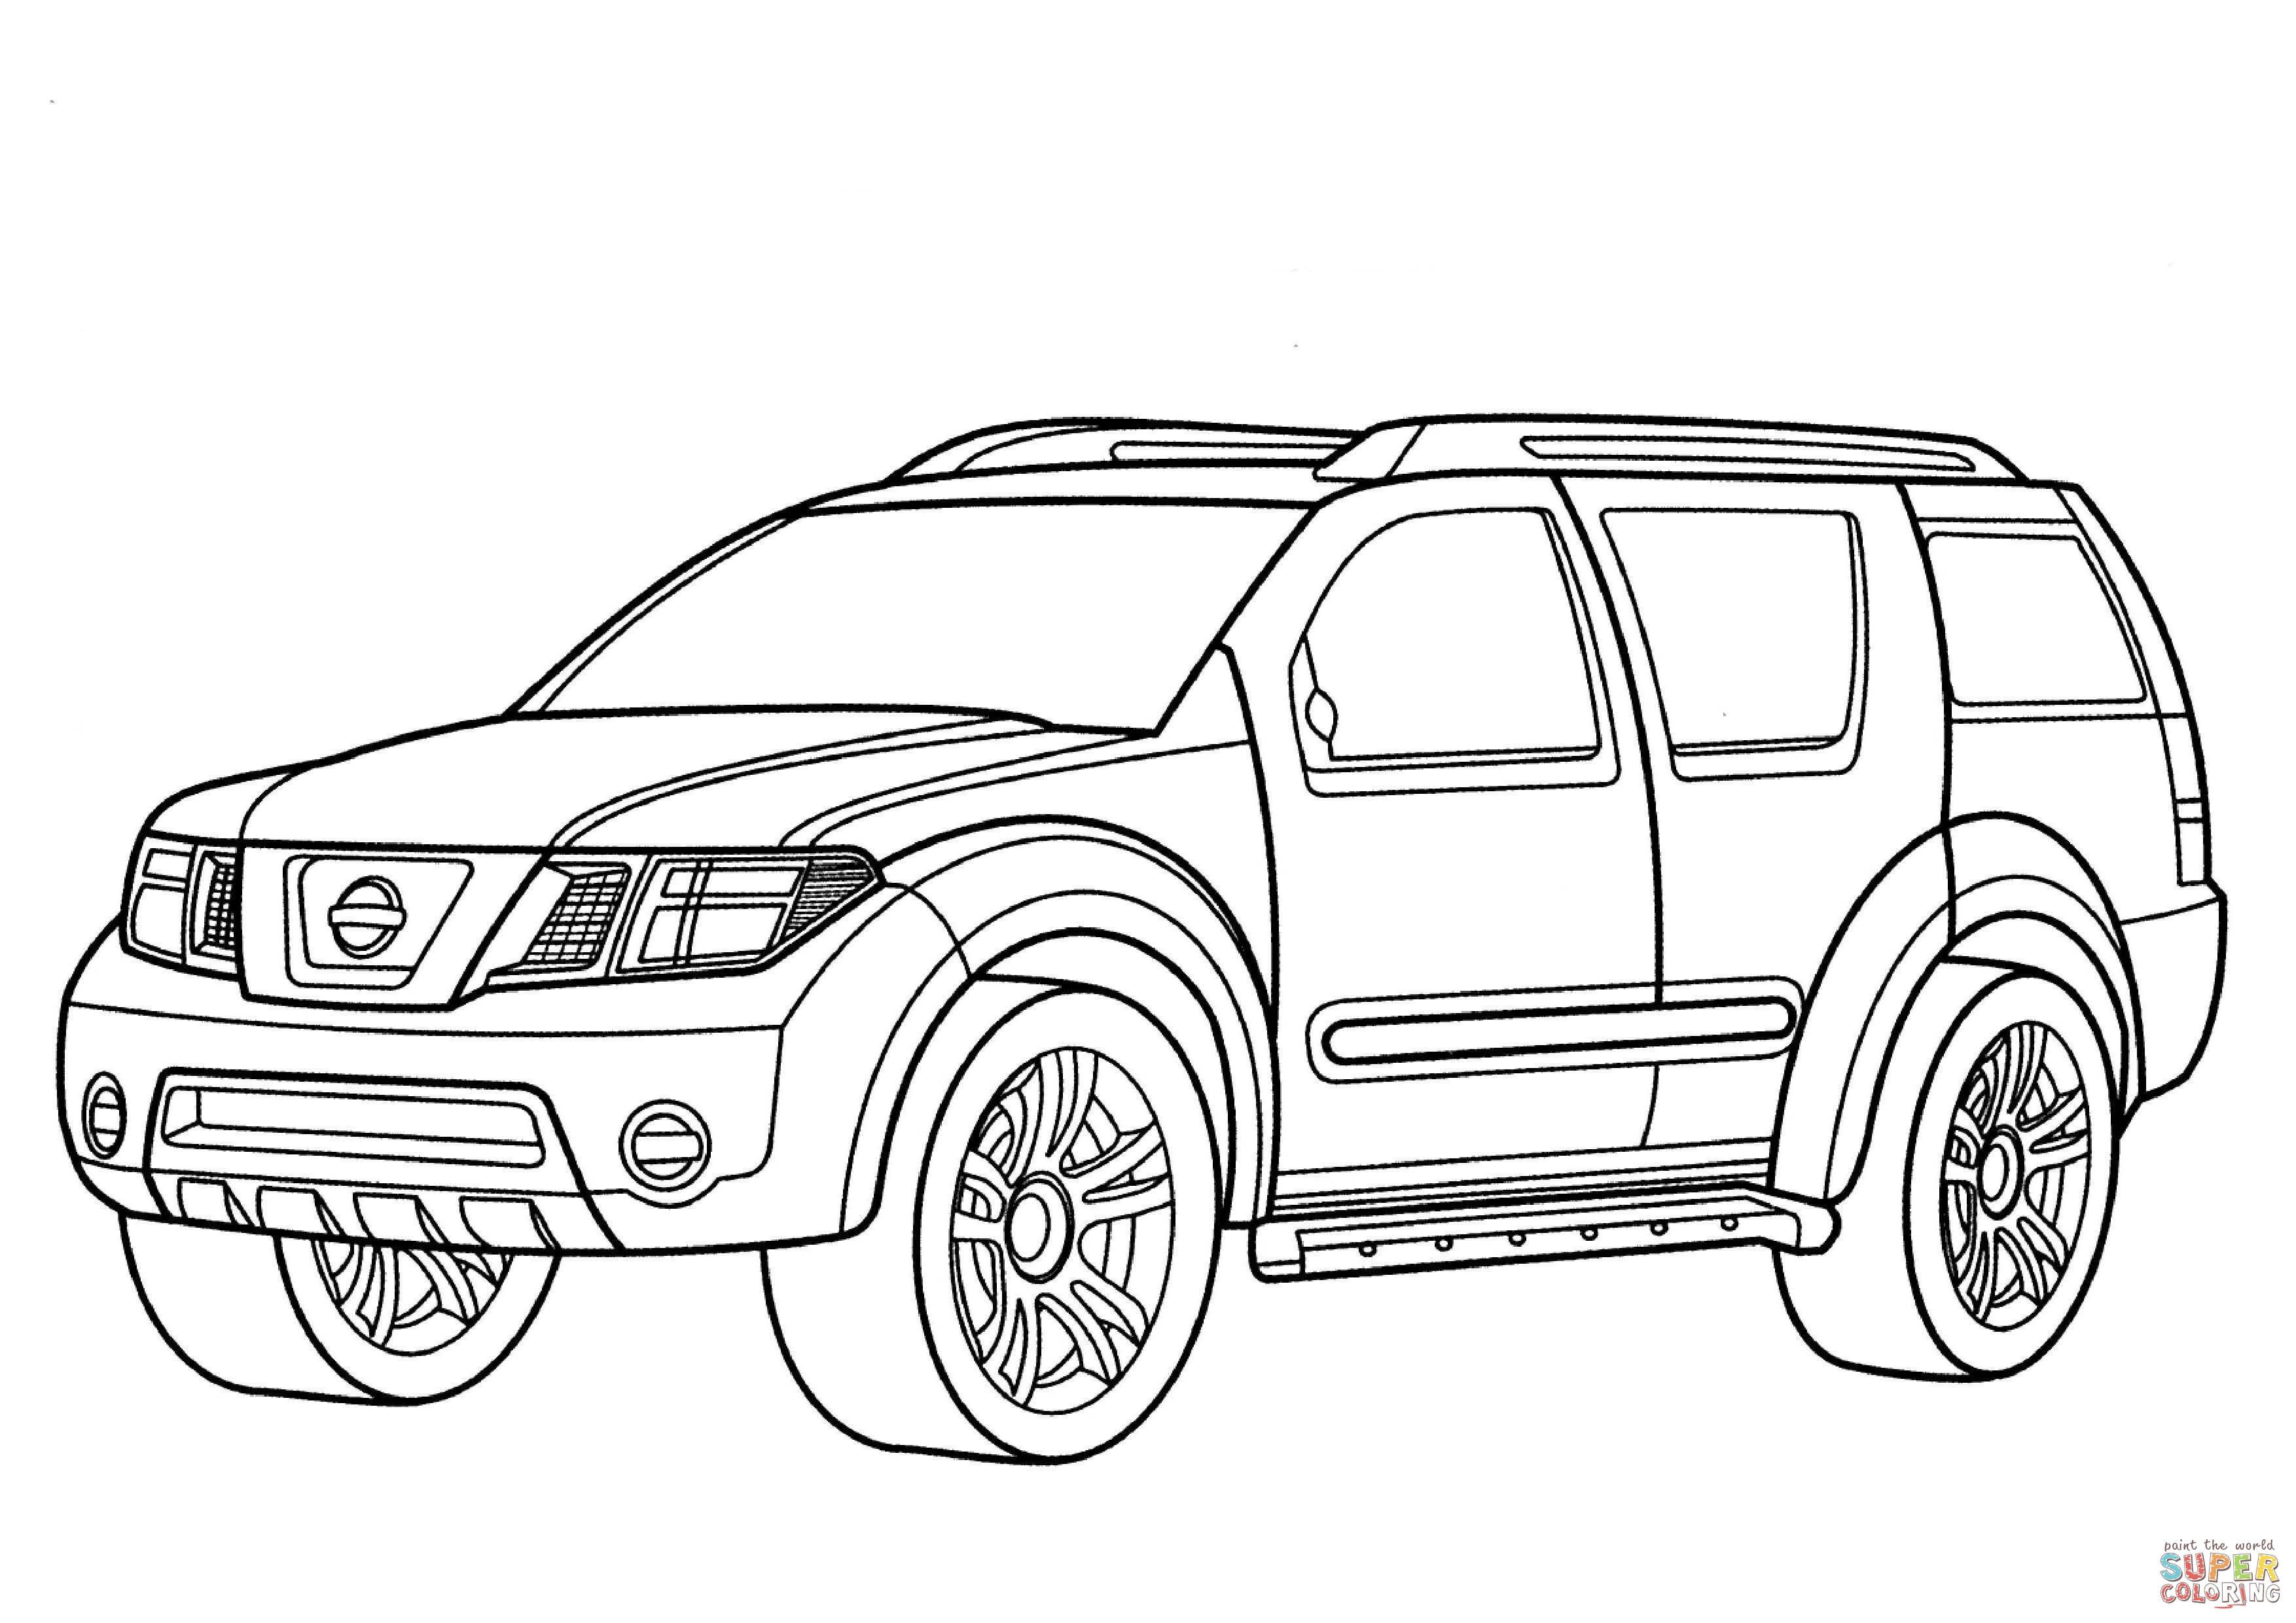 Cadillac Coloring Pages At Getcolorings